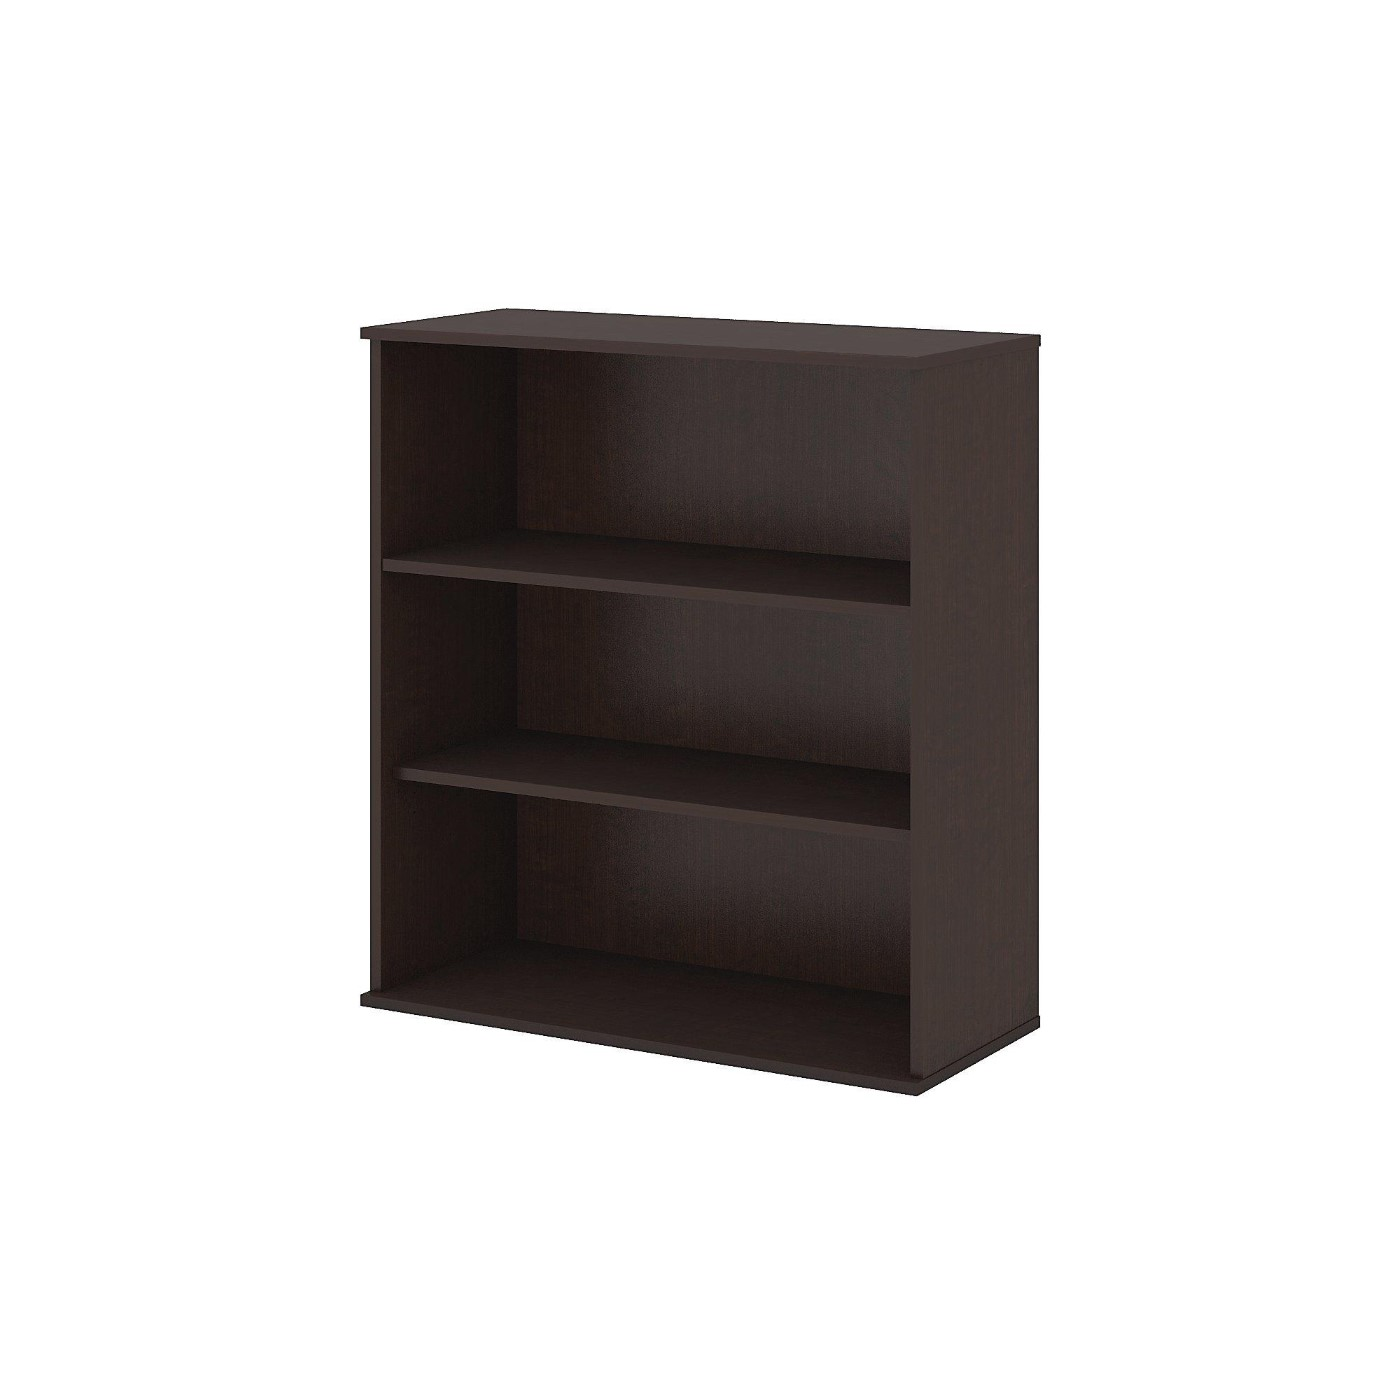 <font color=#c60><b>BUSH BUSINESS FURNITURE EASY OFFICE 48H 3 SHELF BOOKCASE. FREE SHIPPING</font></b></font></b>